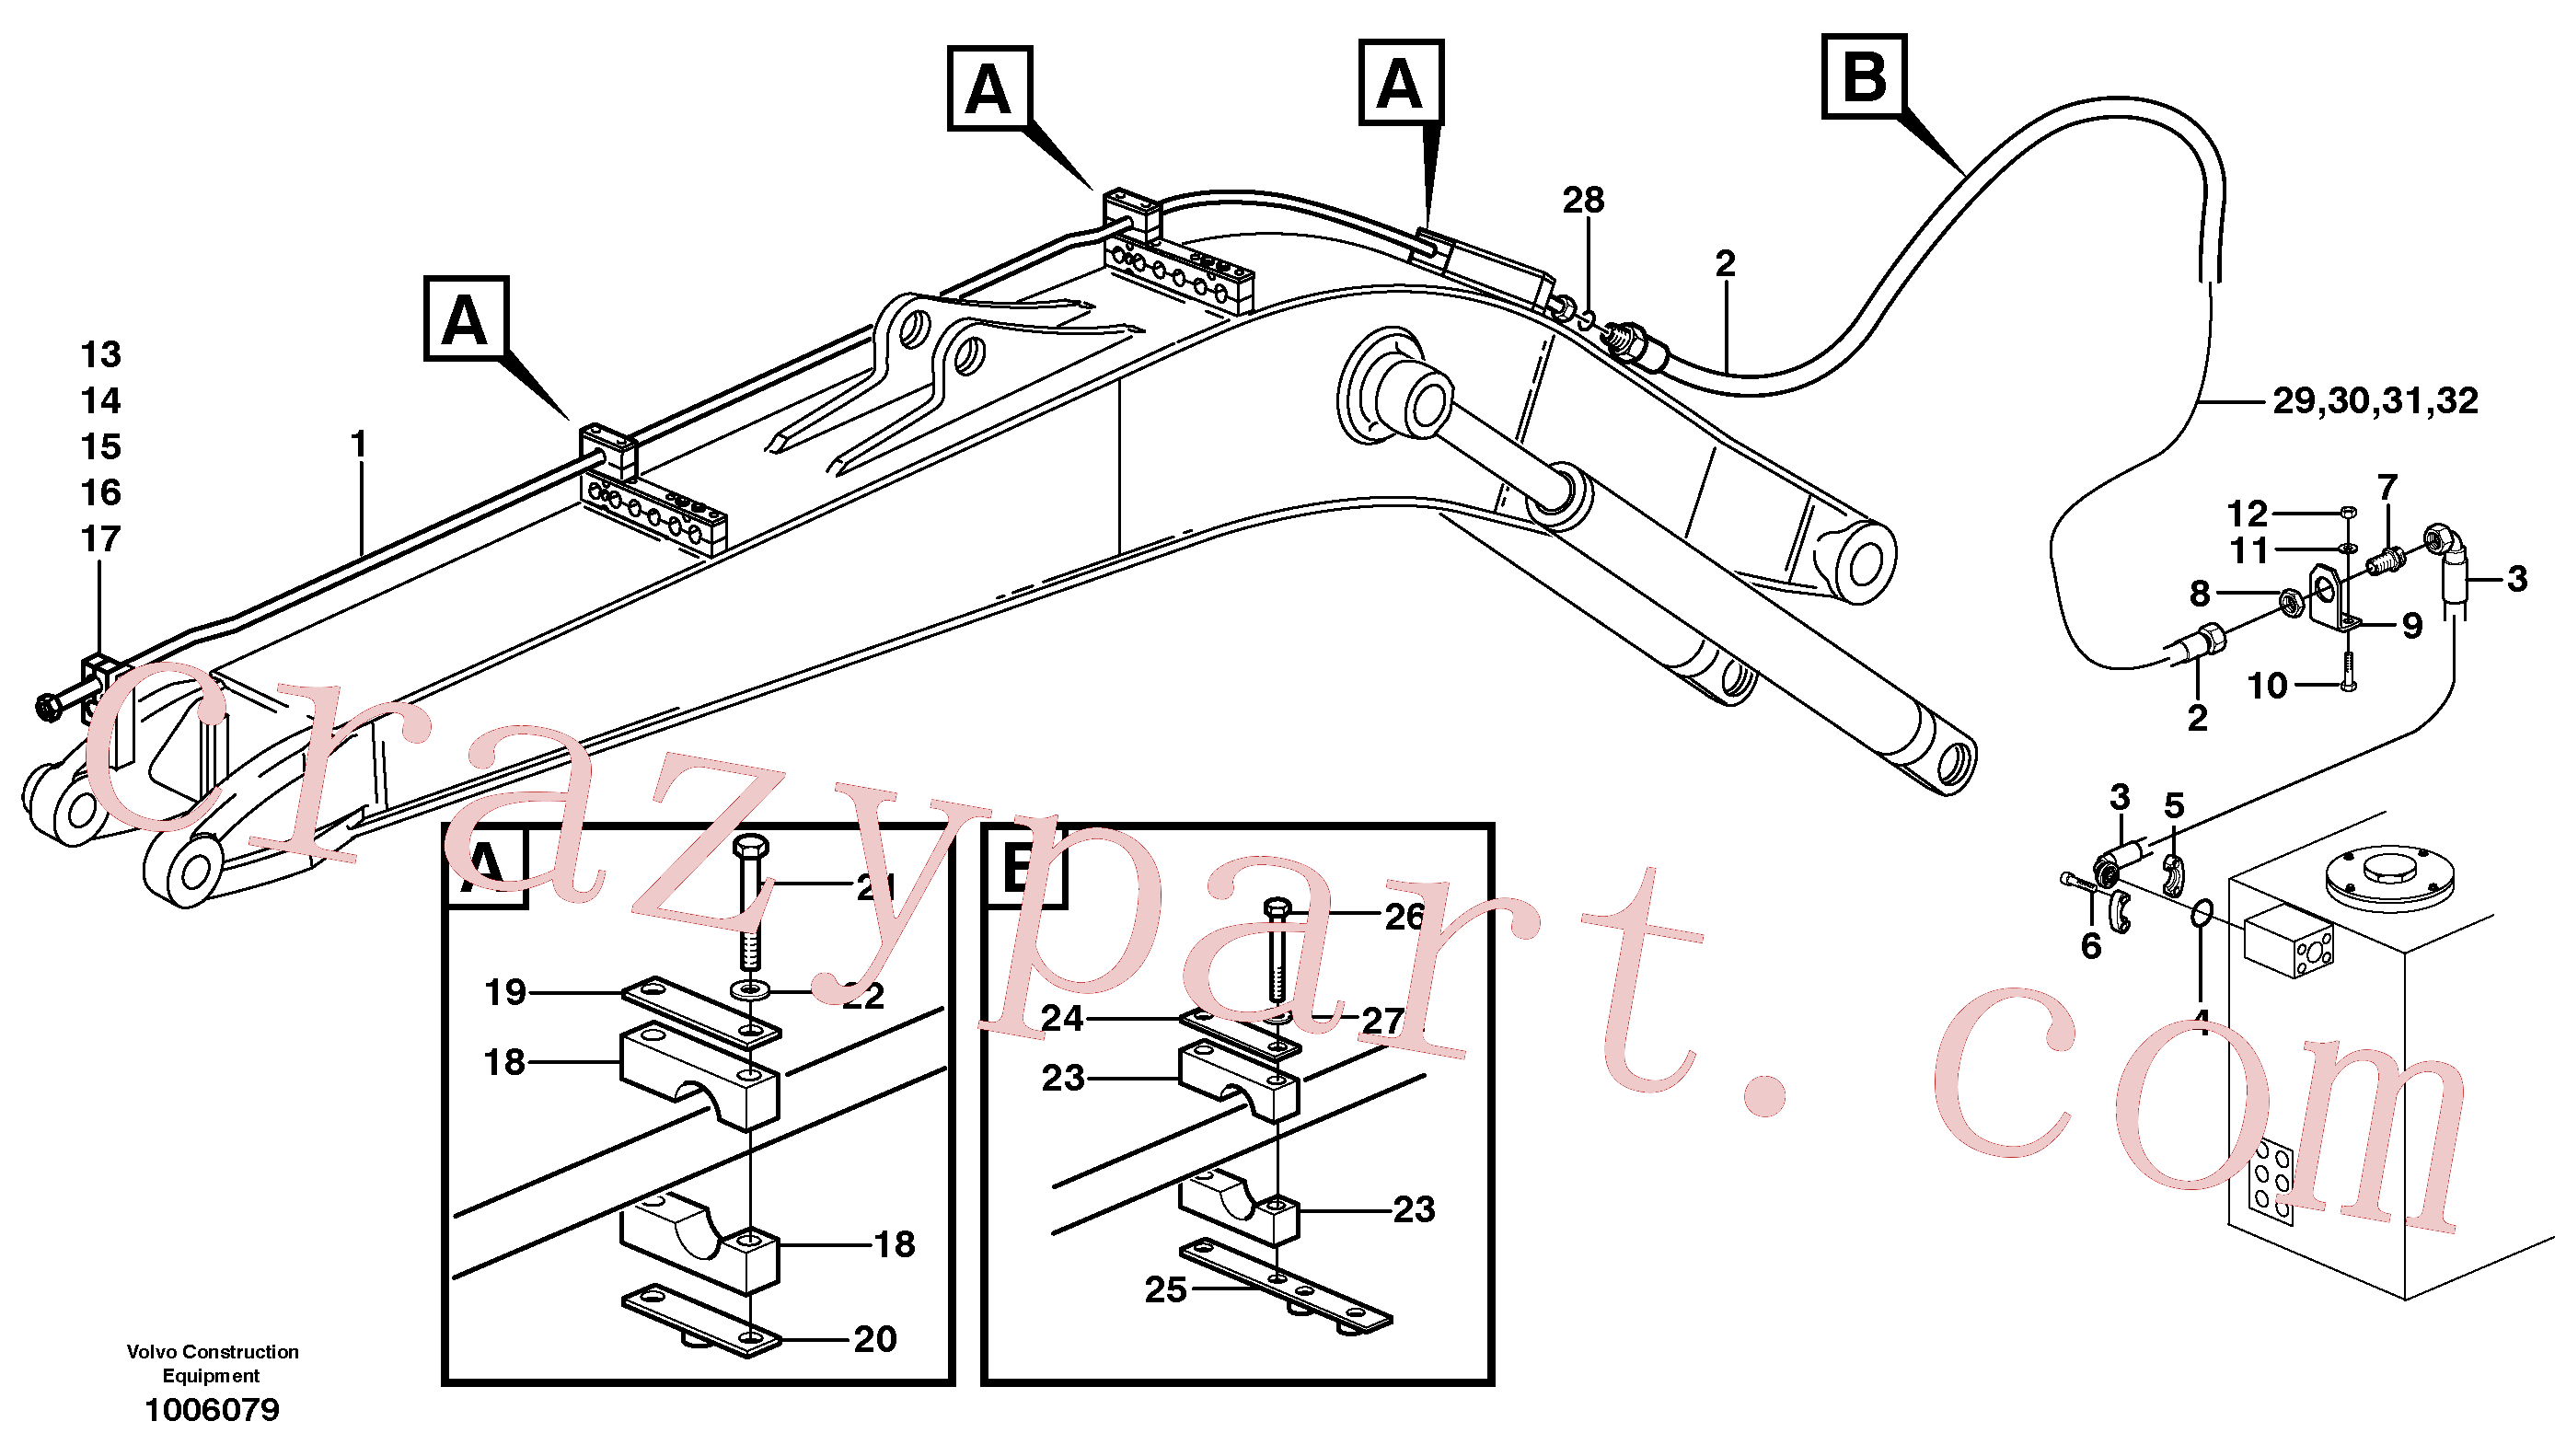 VOE14372162 for Volvo Hammer hydraulics on mono boom, return line(1006079 assembly)